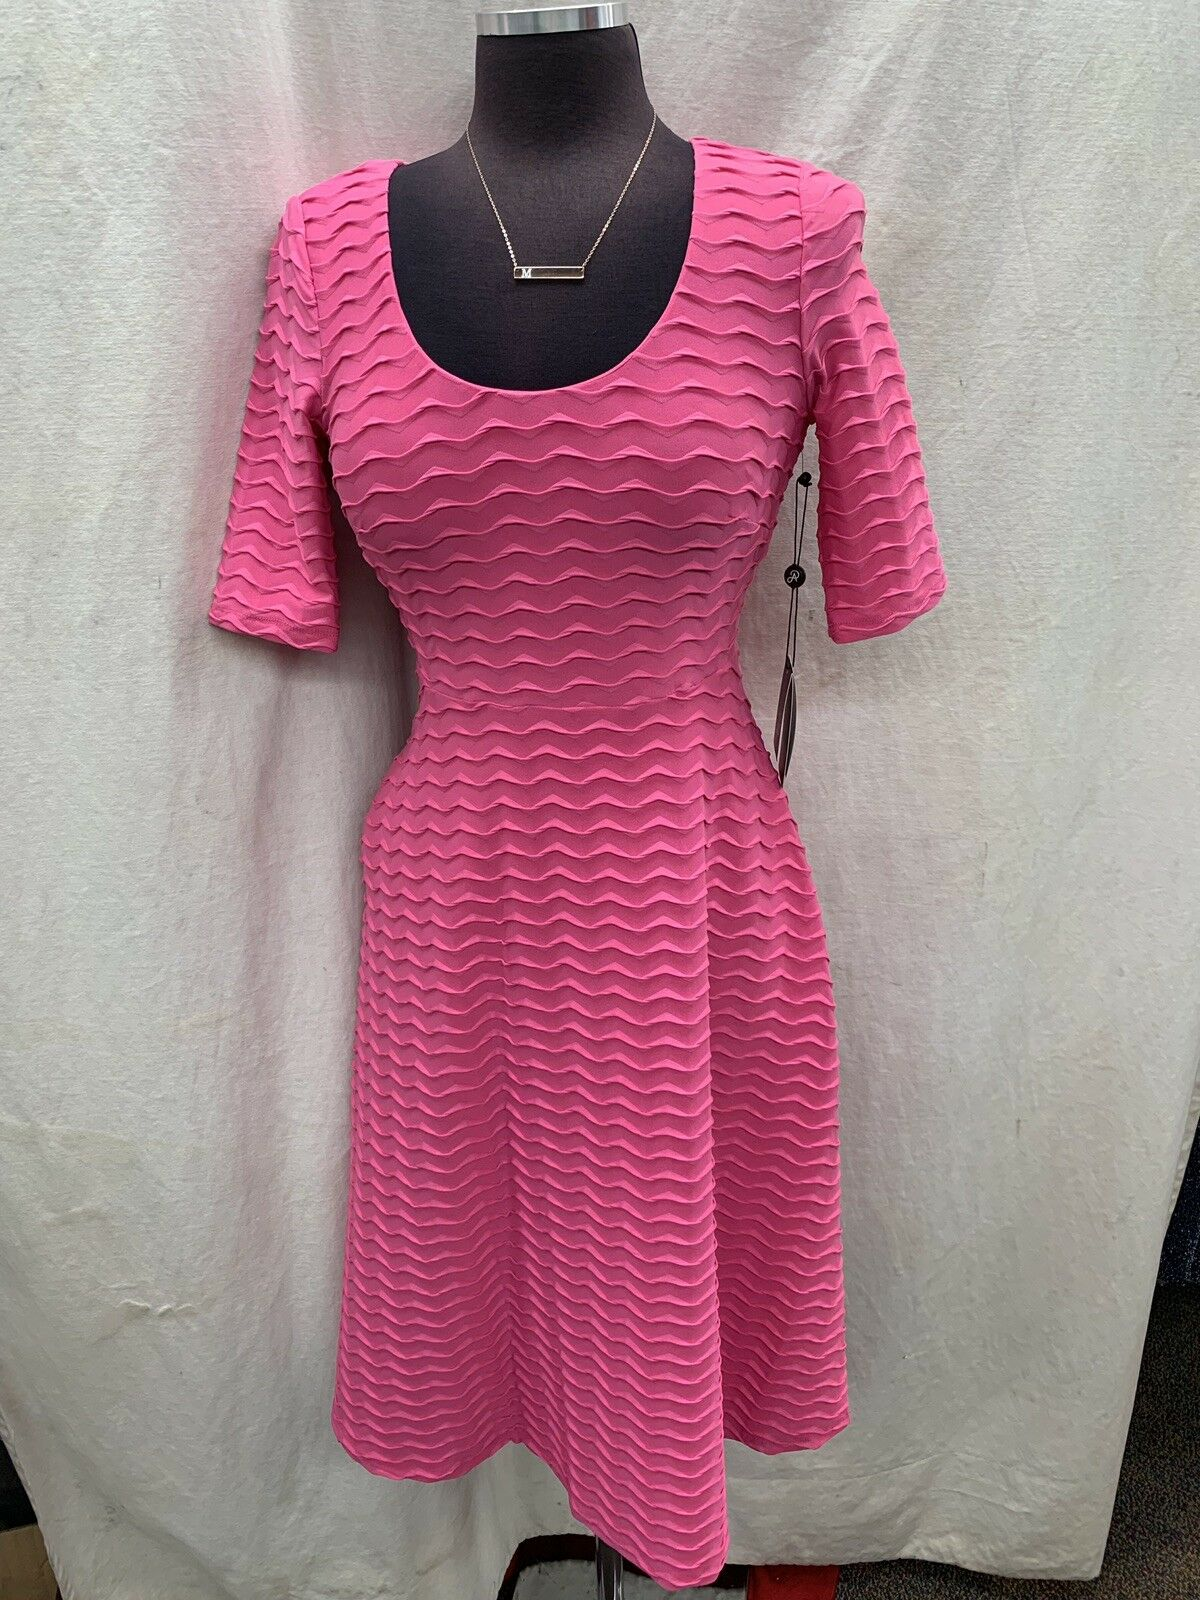 ADRIANNA PAPELL DRESS NEW  SIZE 6 RETAIL 129 STRETCH FABRIC LENGTH 42' PINK